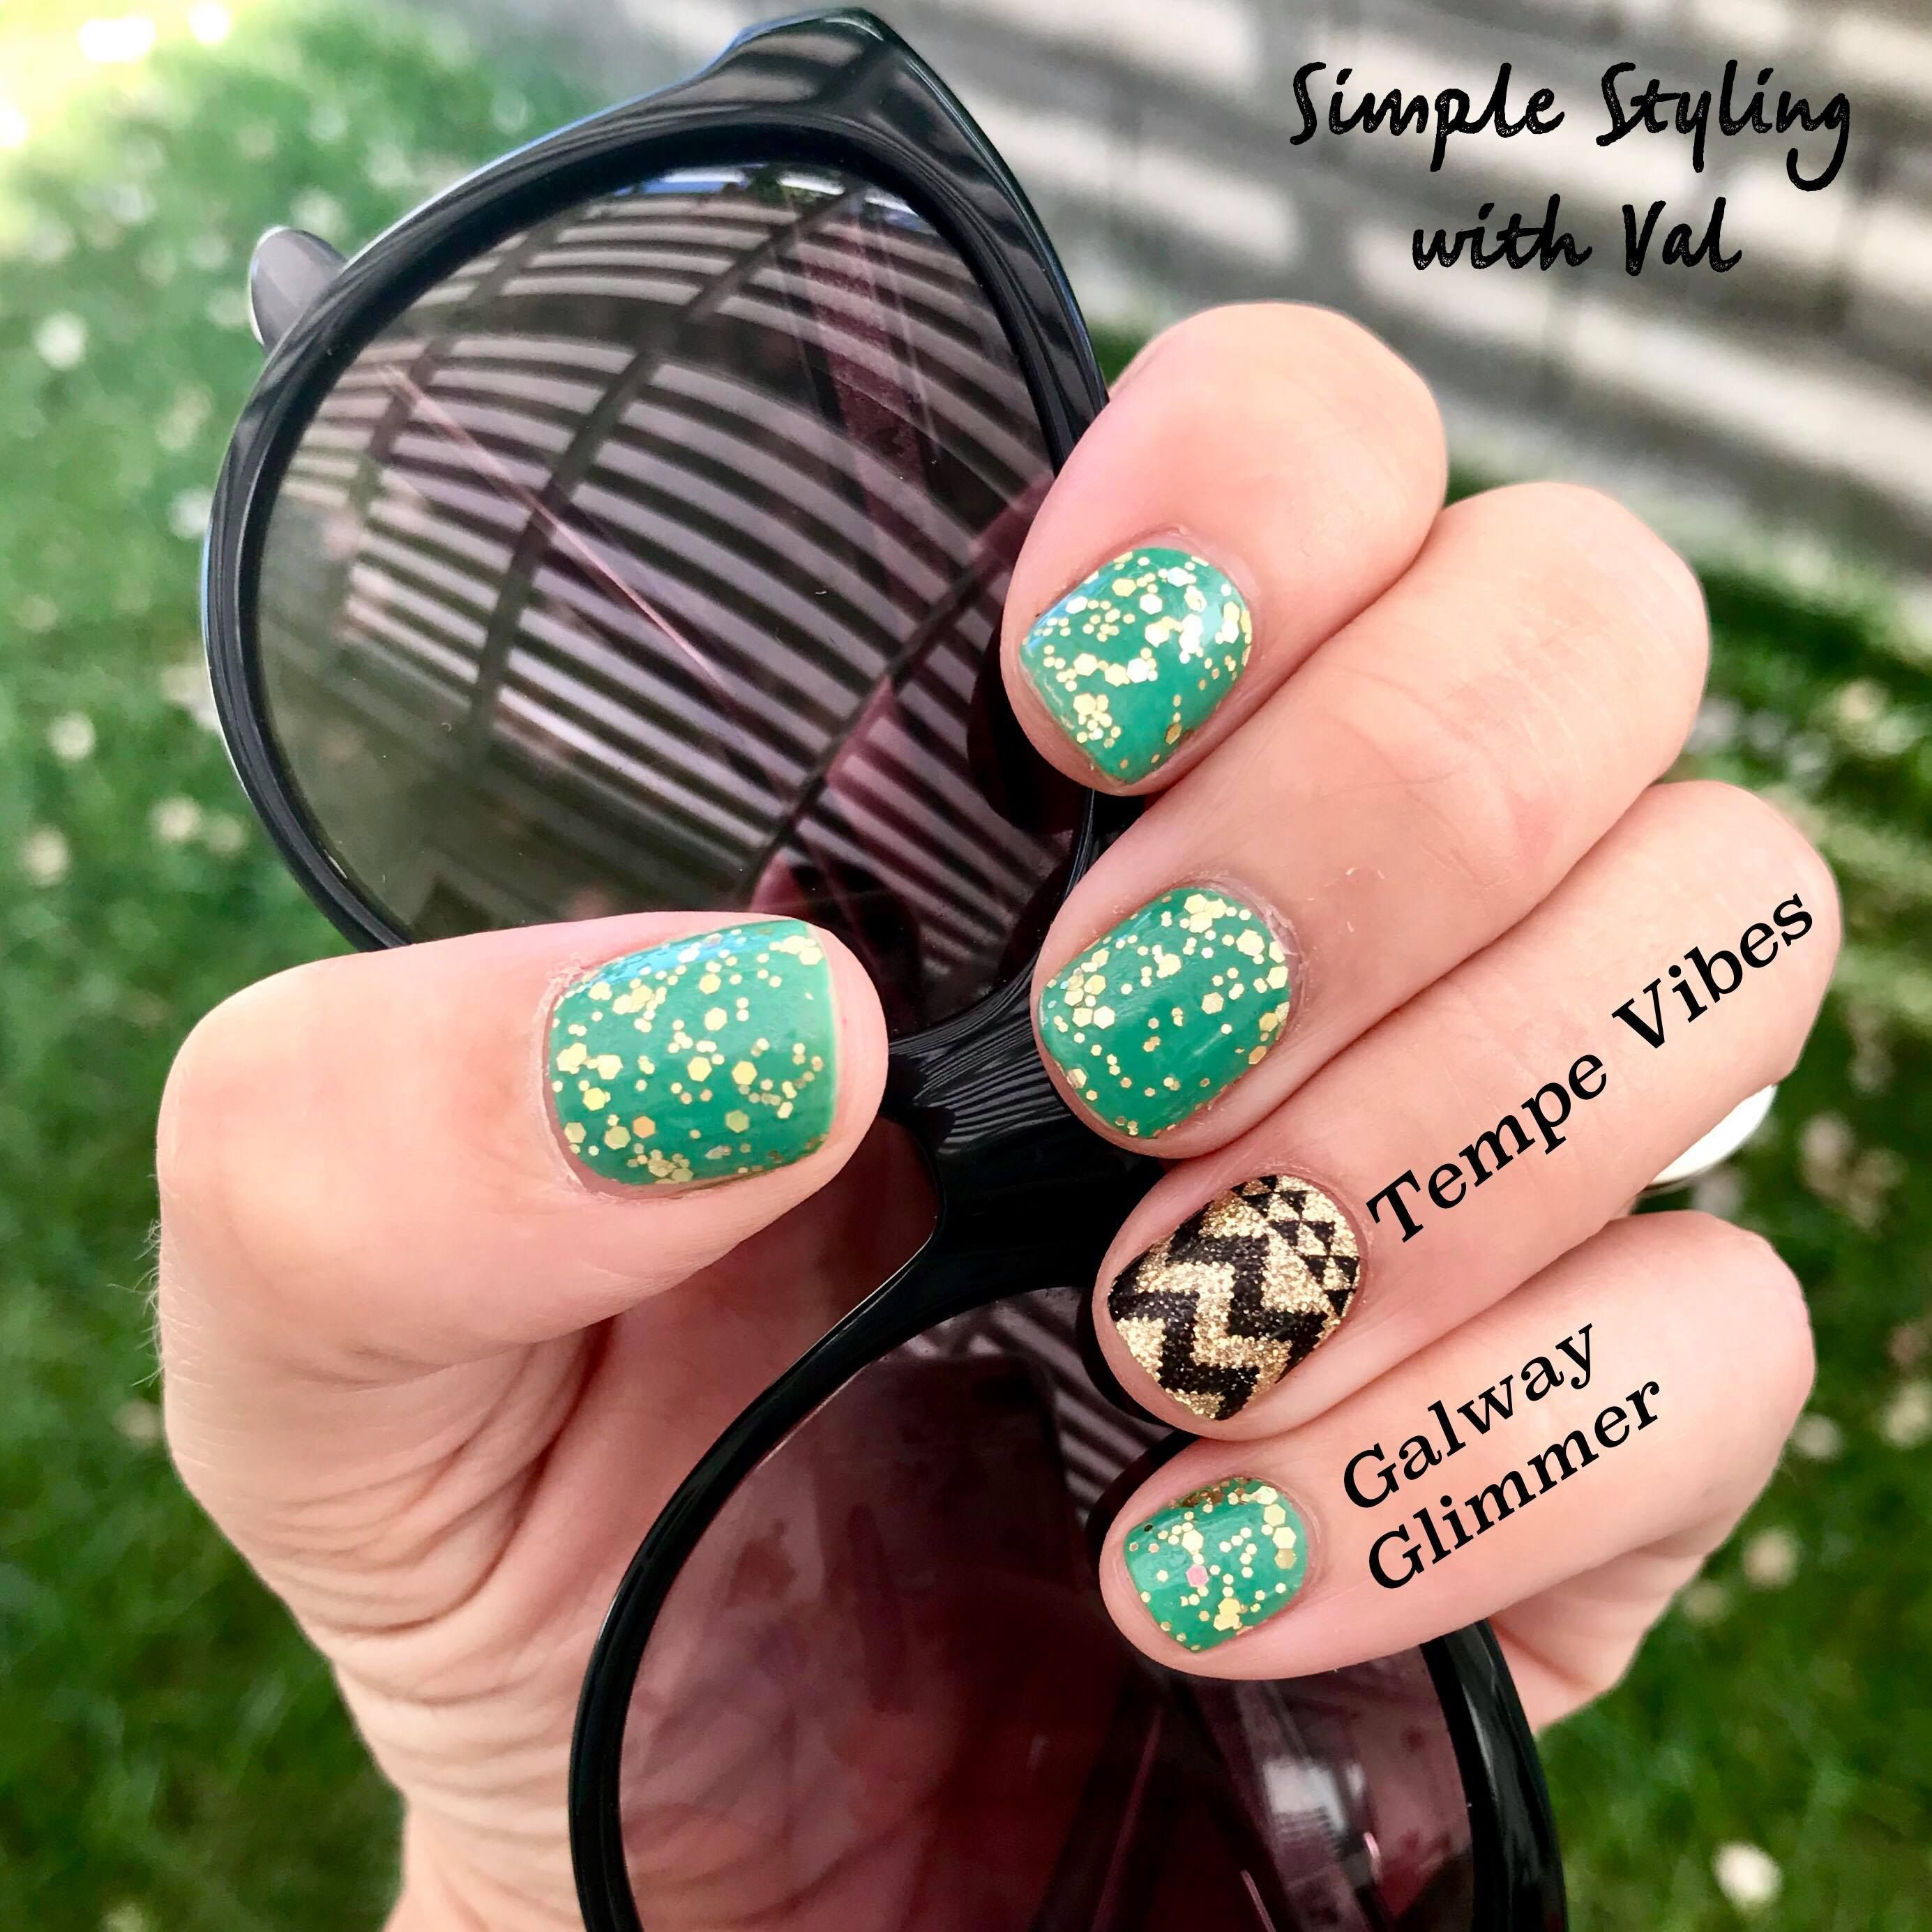 Mixed Mani w/ Accent Nail. Color Street Galway Glimmer is